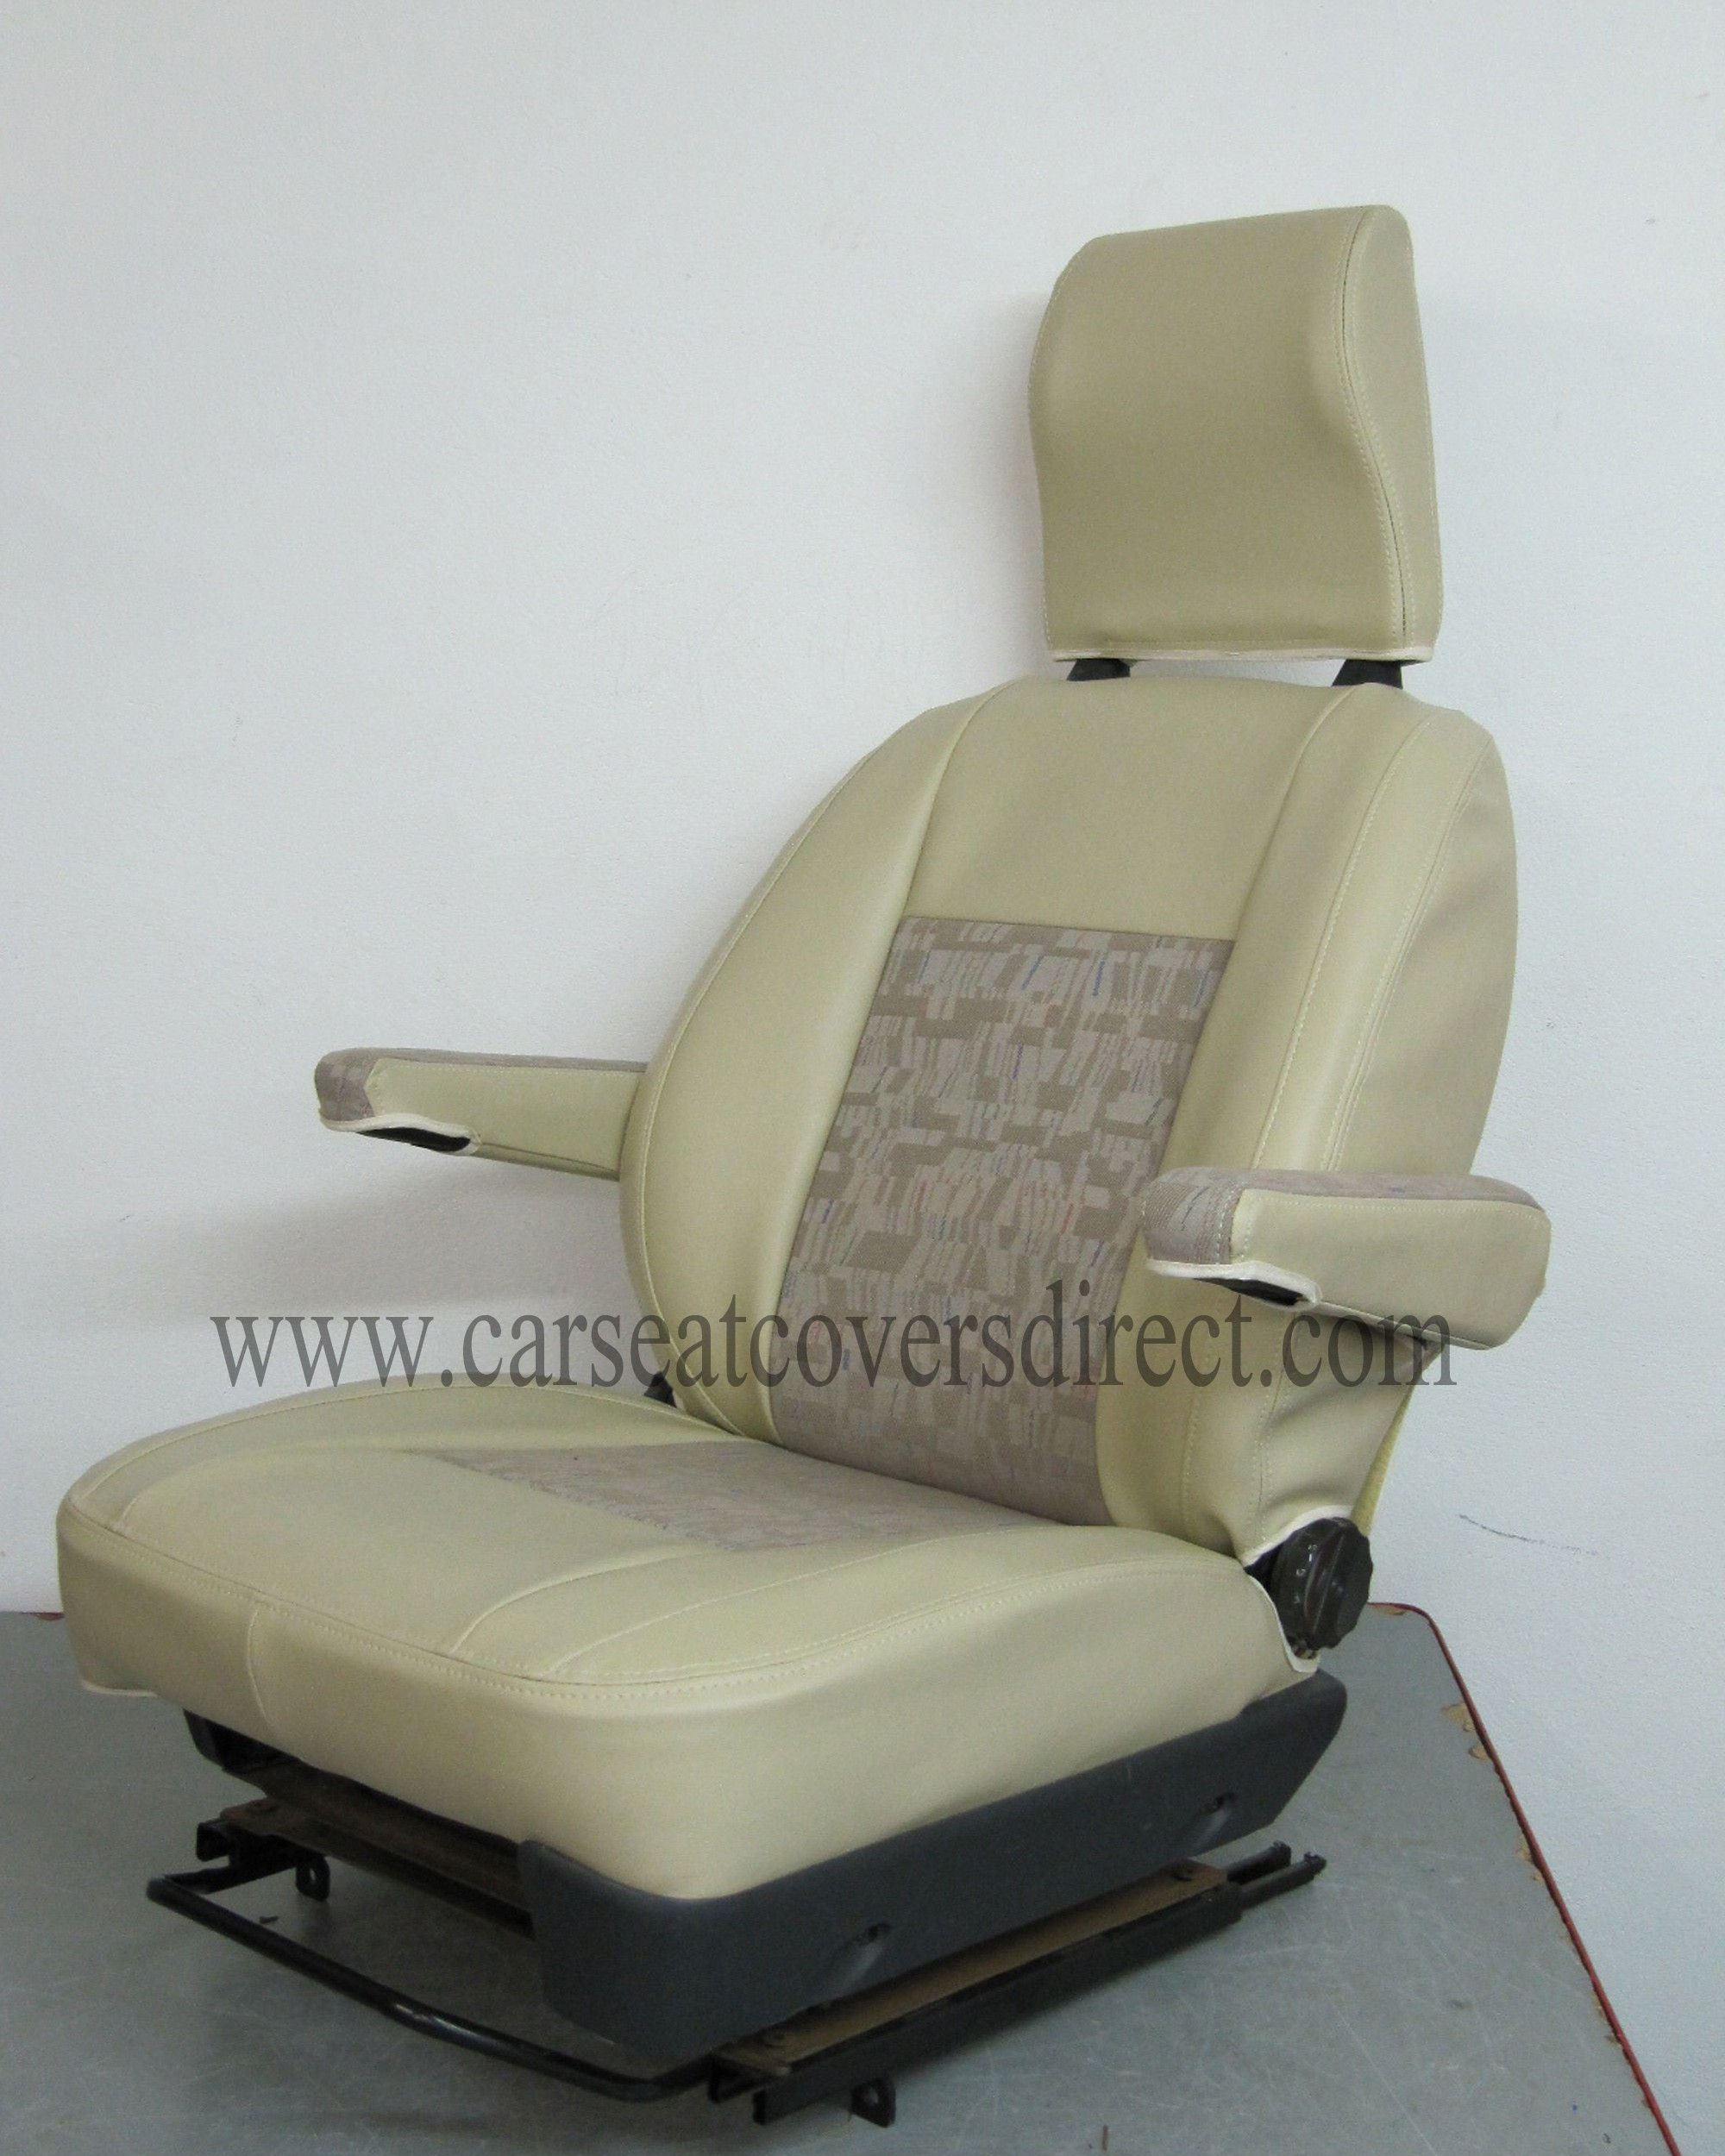 Fiat Ducato Motorhome Tailored Seat Covers Car Seat Covers Direct  # Muebles Fiat Ducato